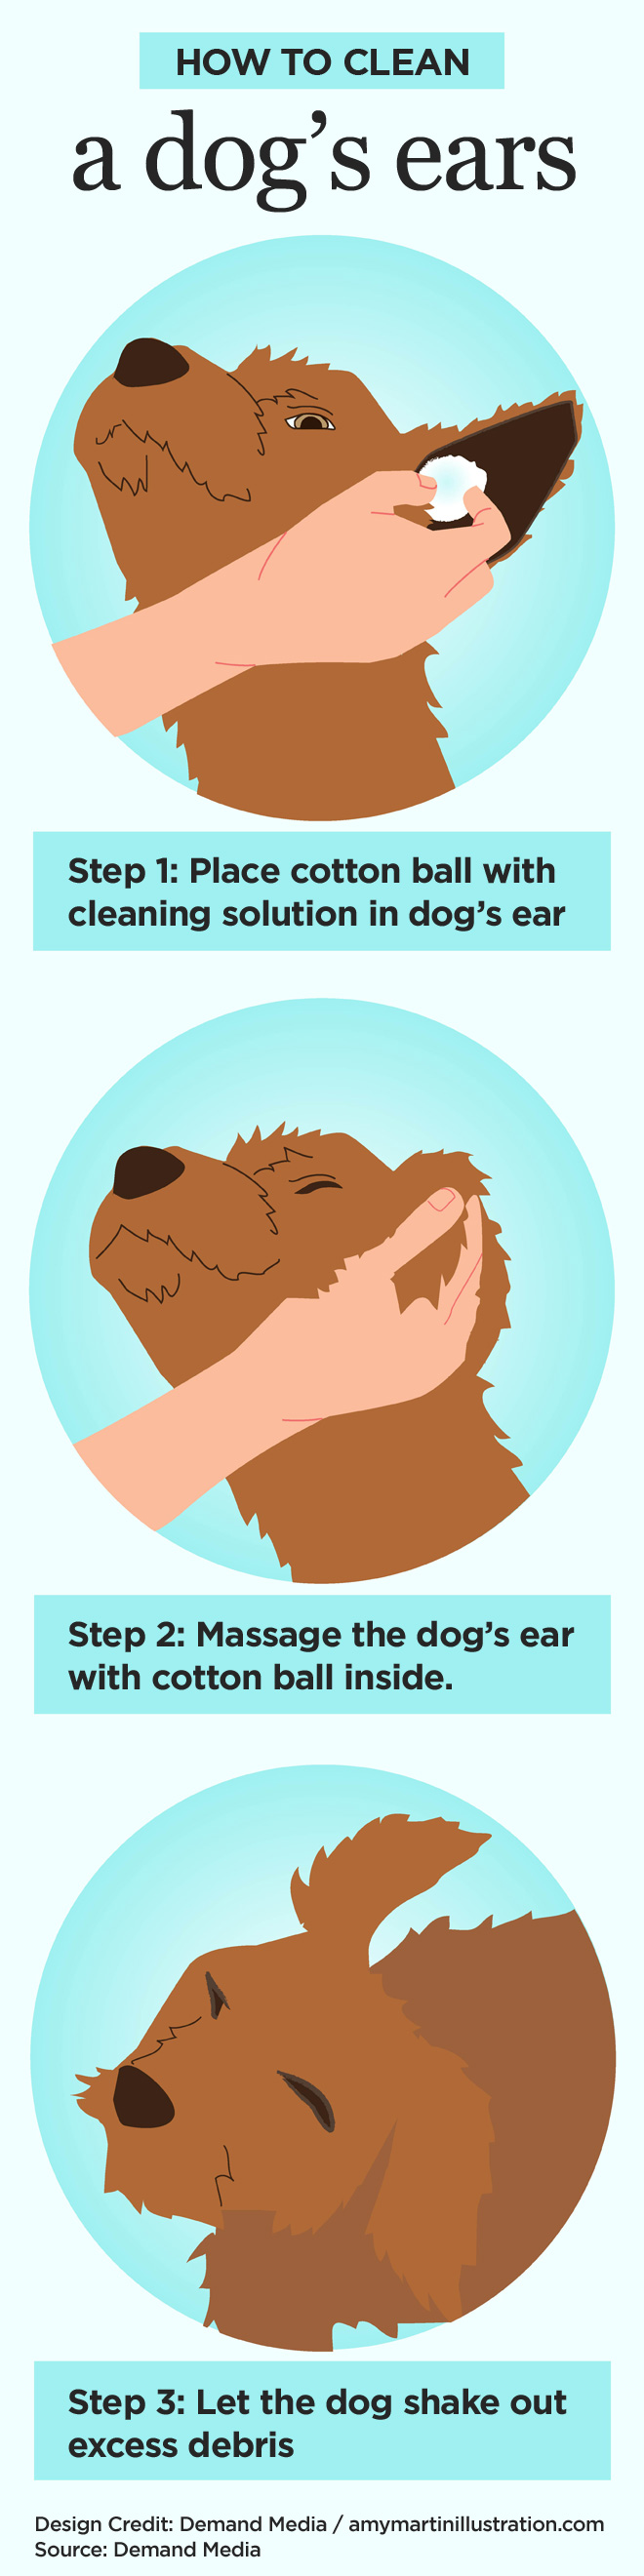 How to clean a dog's ears infographic